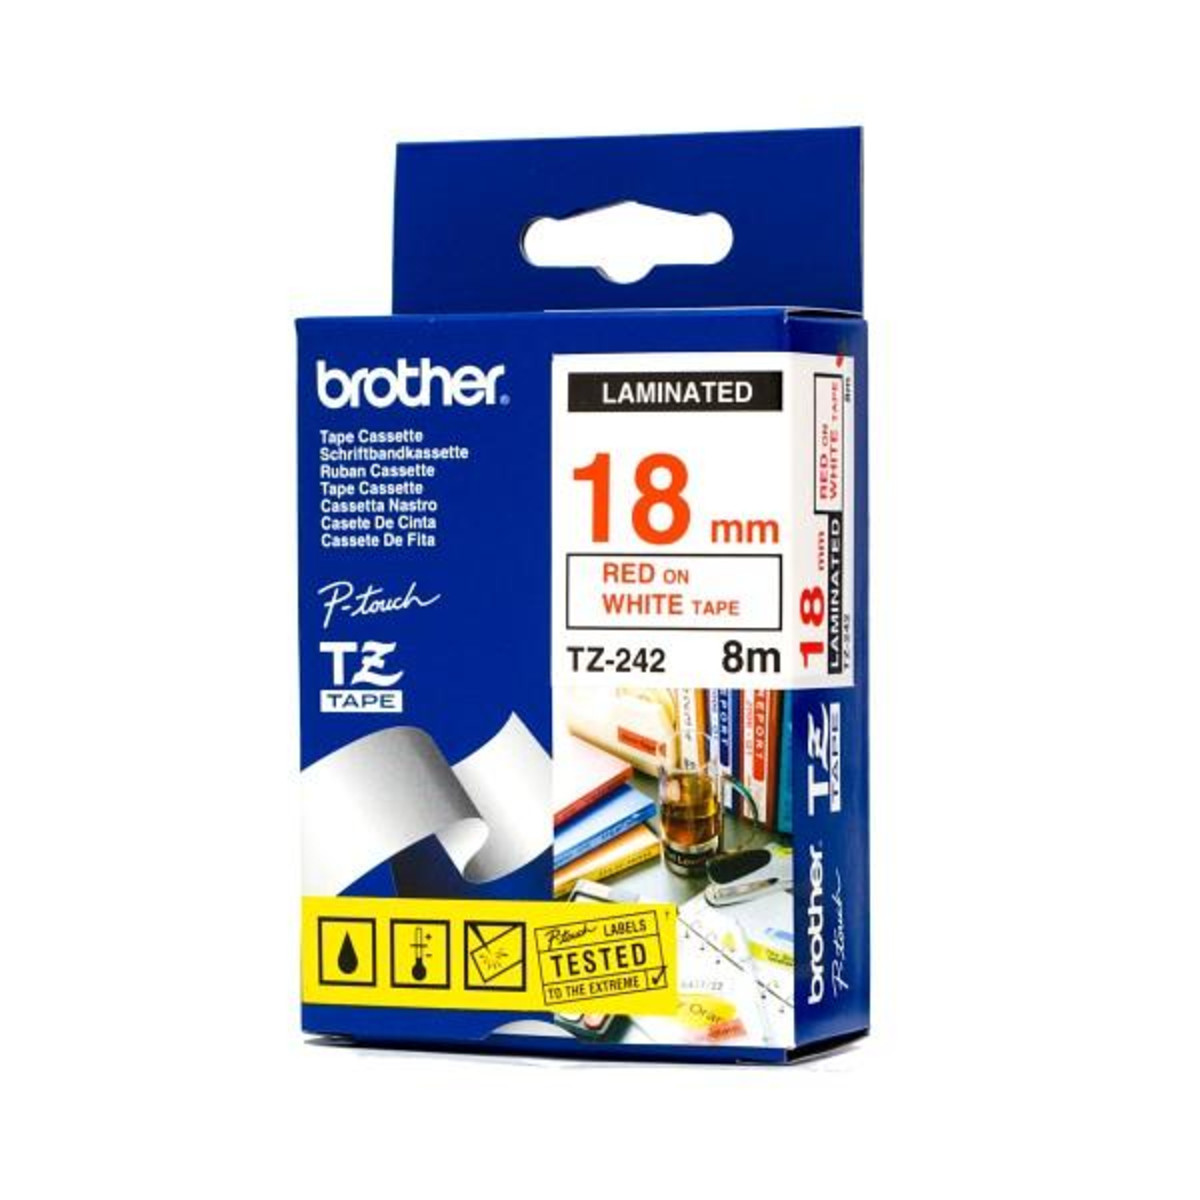 Brother TZ-242 18mm Red on White Tape